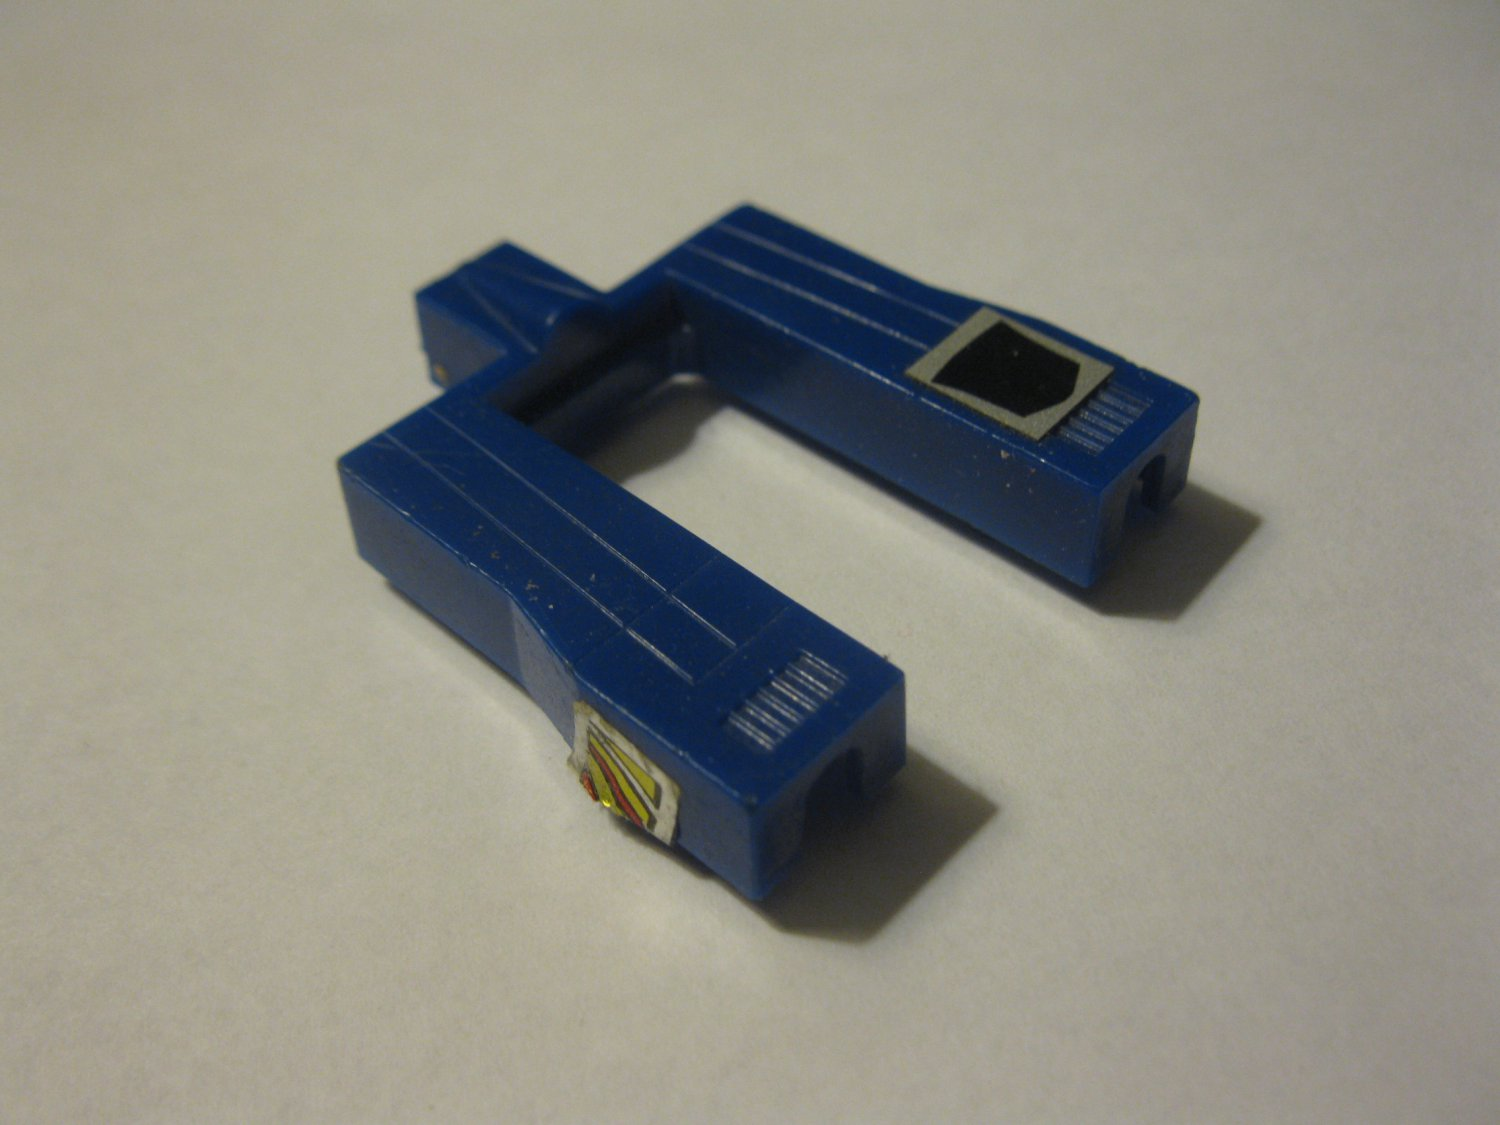 G1 Transformers Action figure part: 1983 Dirge- Top section of Jet